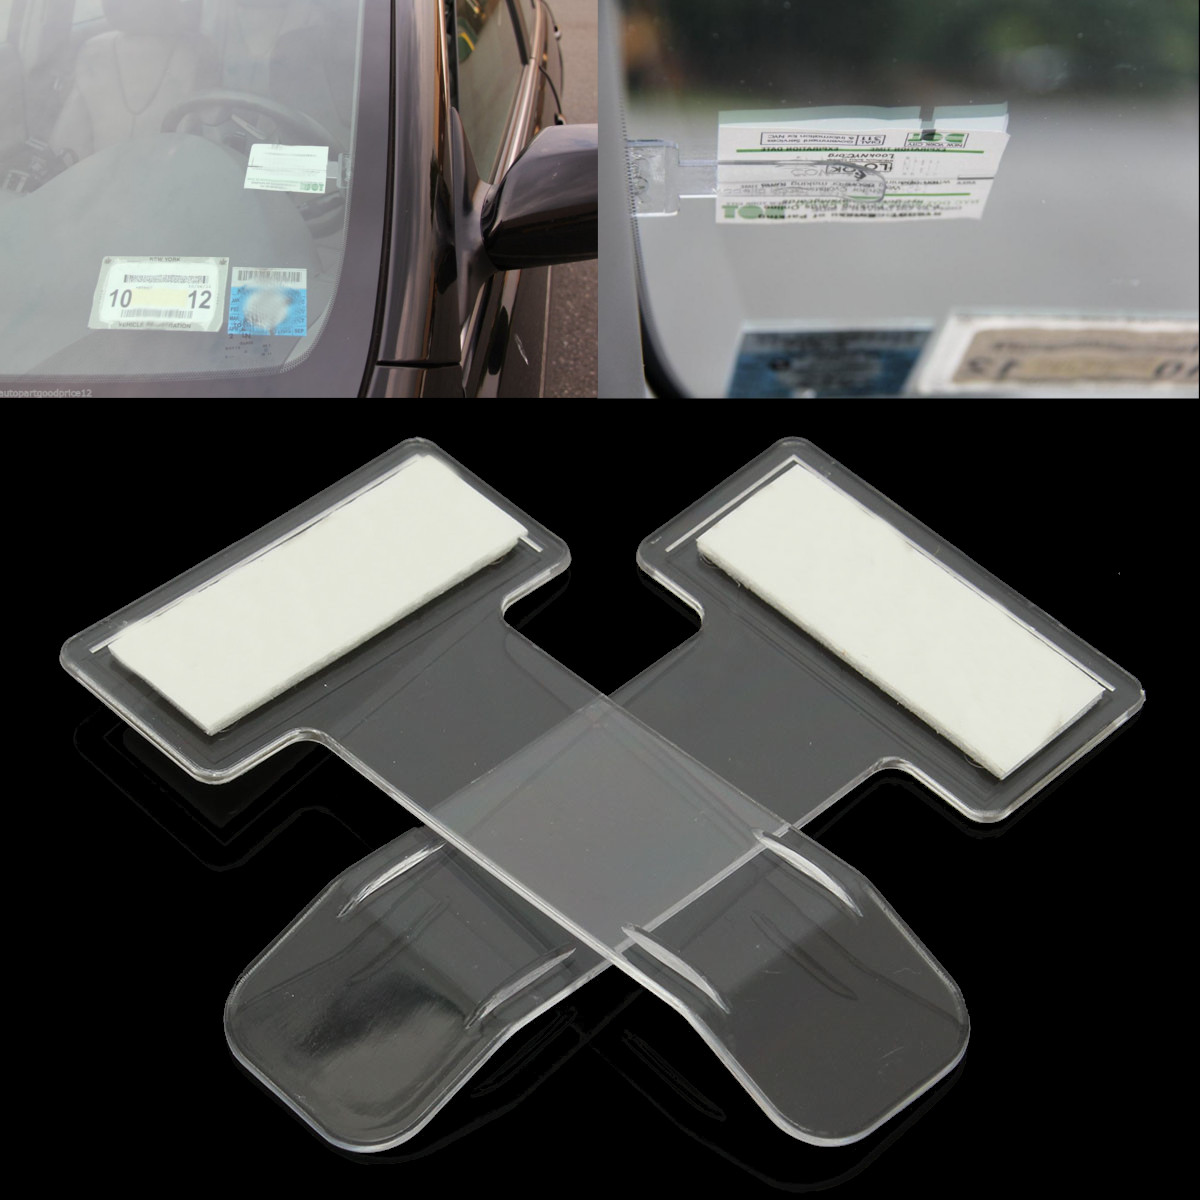 2Pcs 75mm*40mm Car Vehicle Parking Ticket Permit Holder Clip Sticker Windscreen Window Fastener Stickers Kit Car Accessories